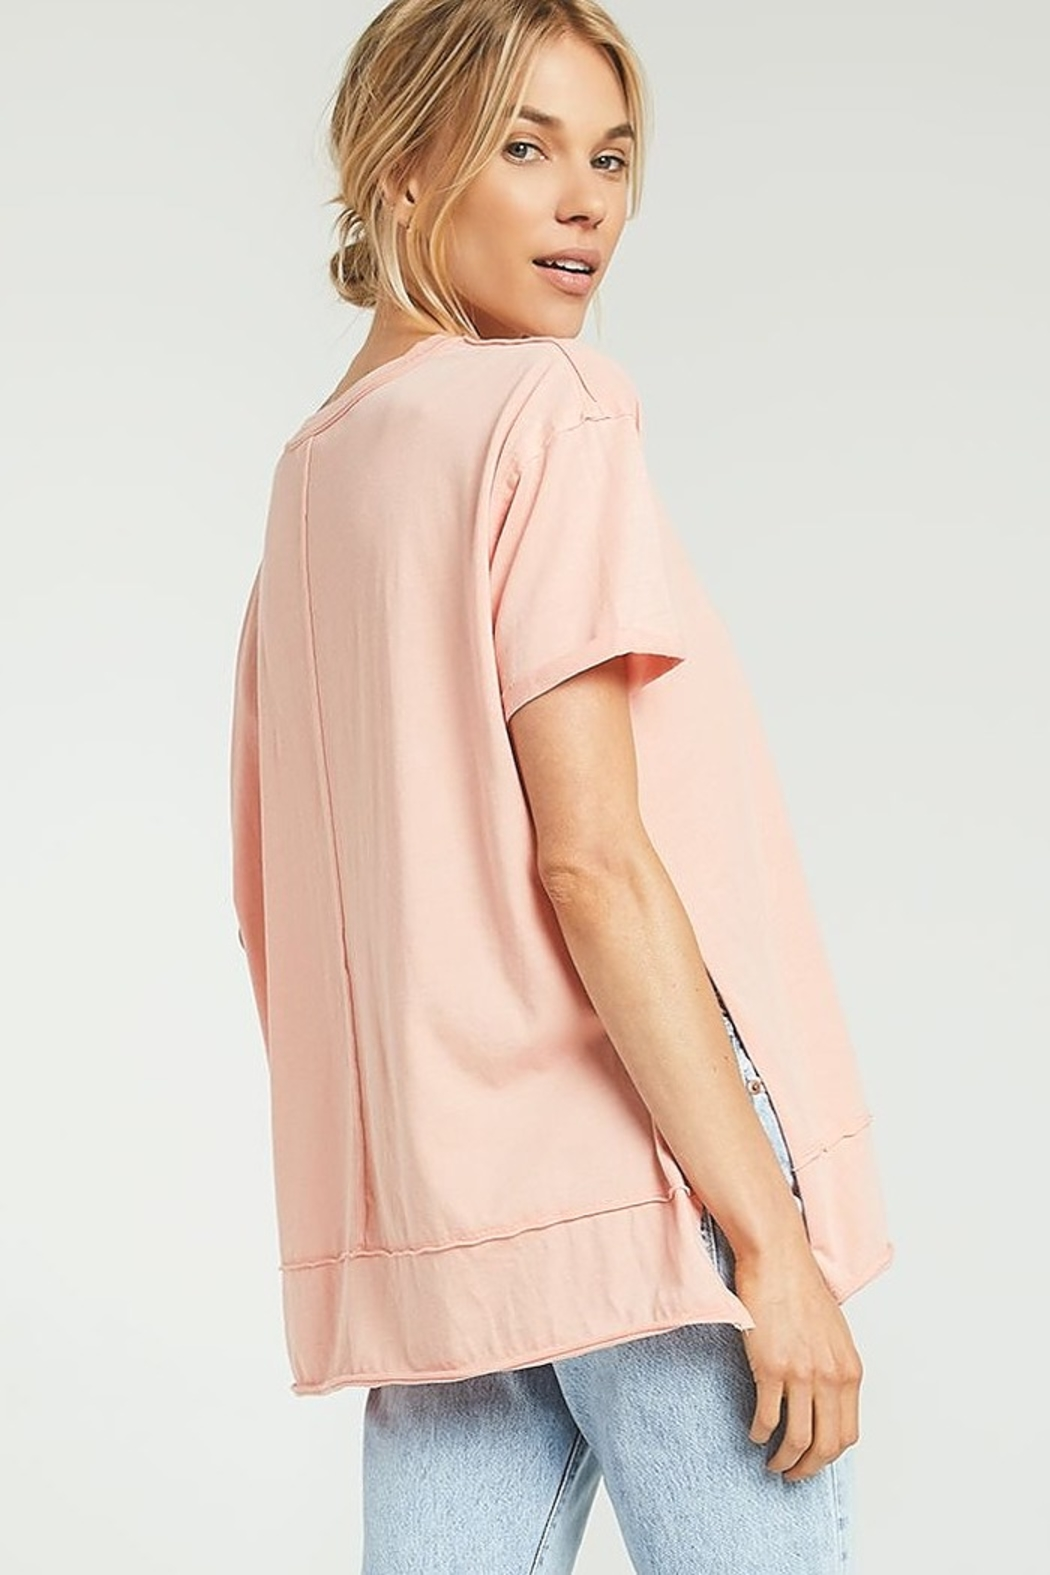 z supply Pali Tunic Tee - Front Full Image